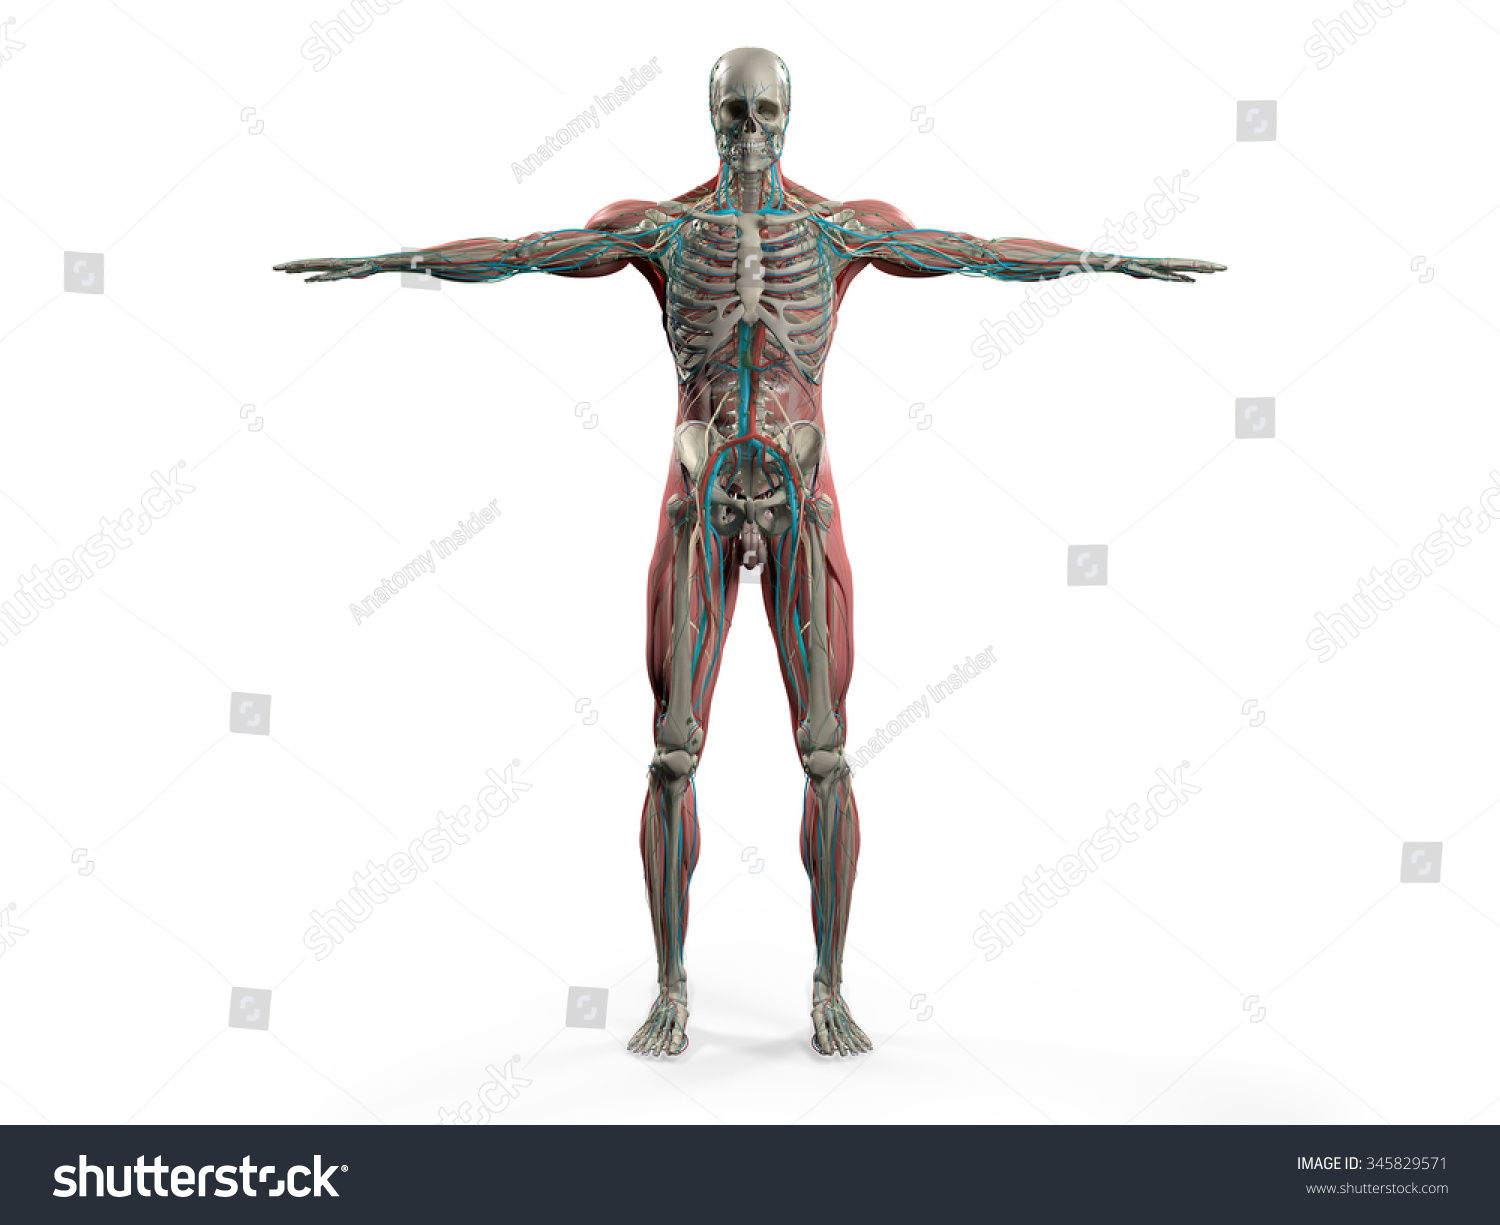 hight resolution of human anatomy showing back full body head shoulders and torso bone structure